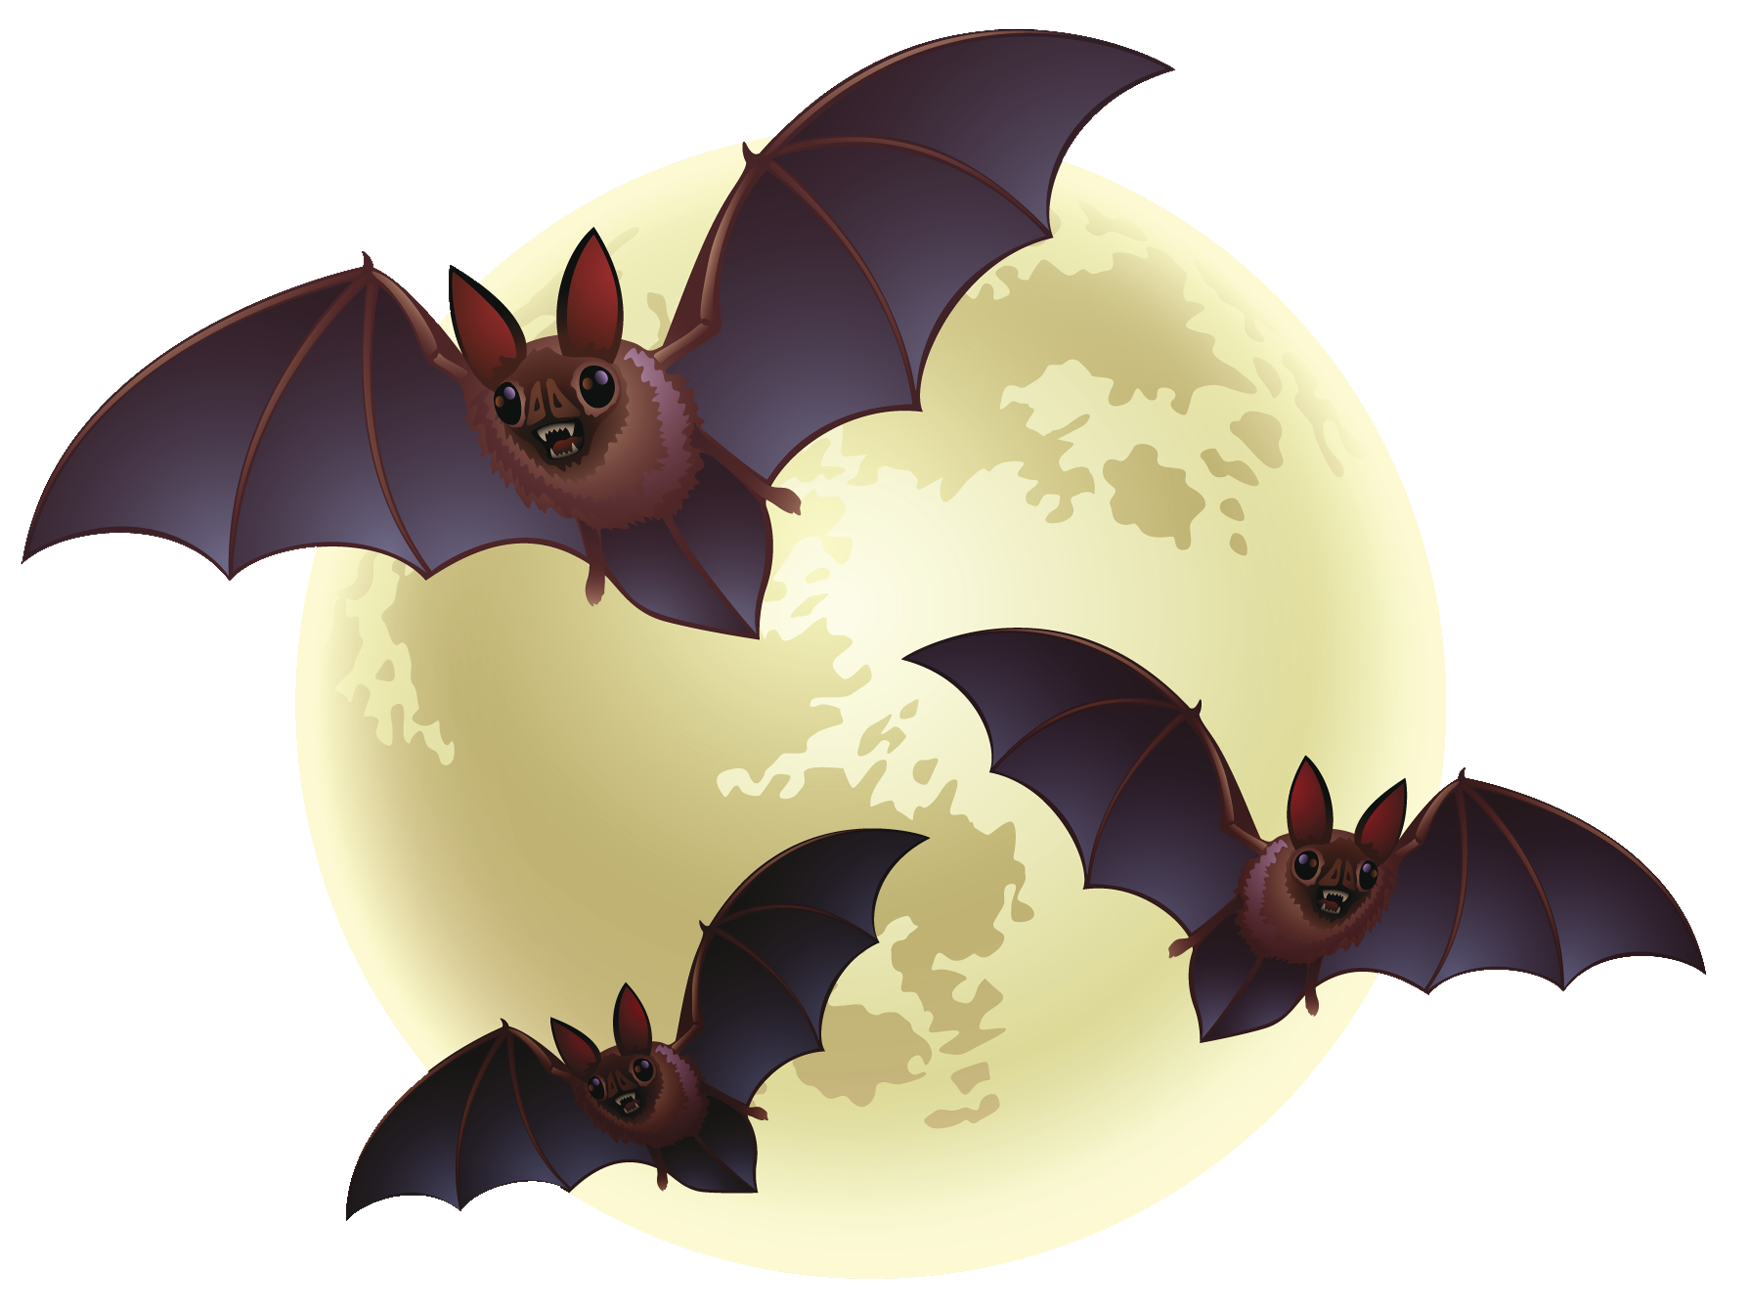 Moon clipart creepy. Halloween with bats png